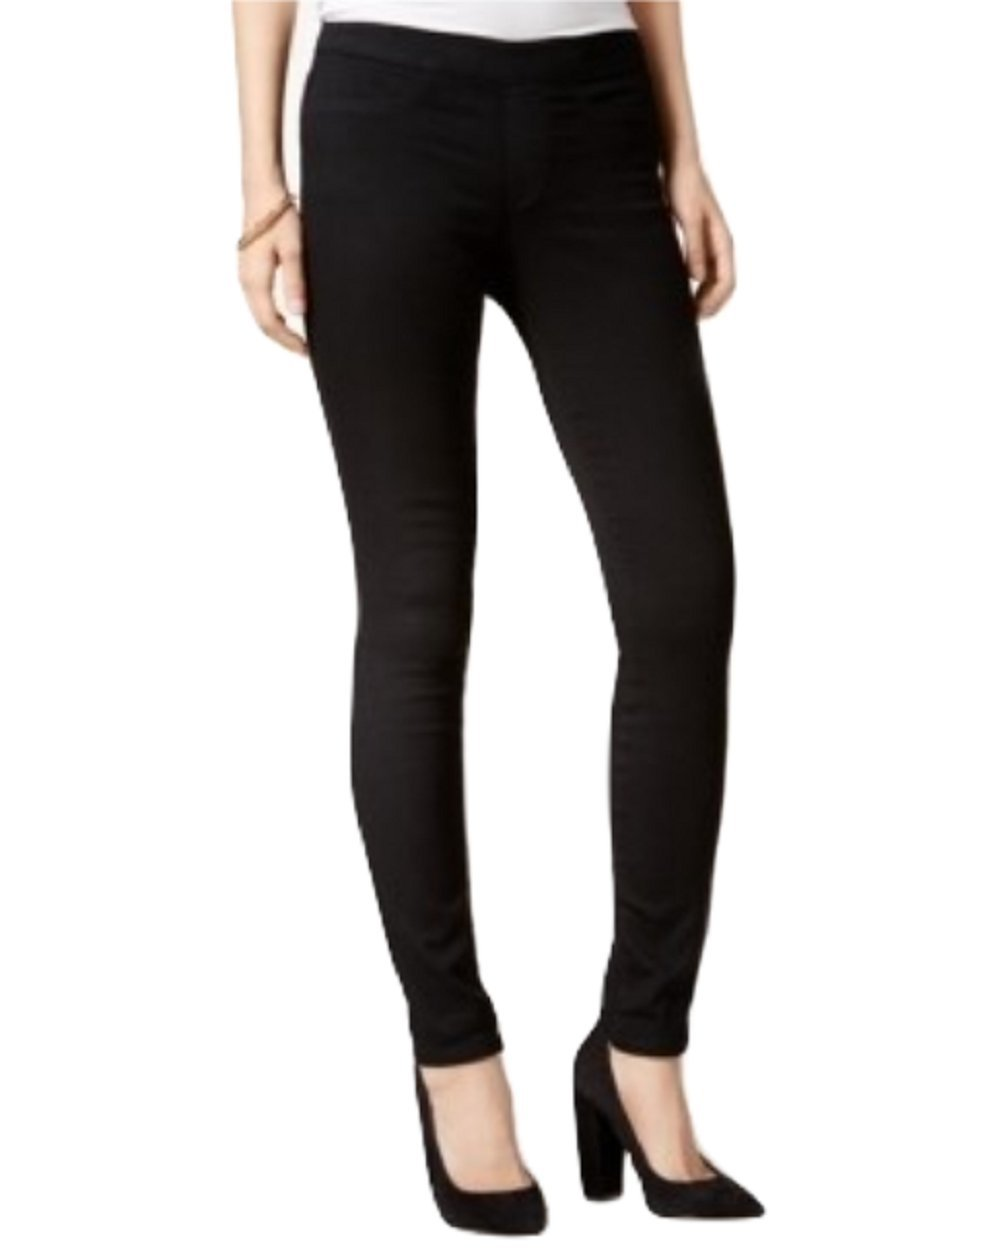 Maison Jules Womens Pull On Stretch Jeggings Black XS